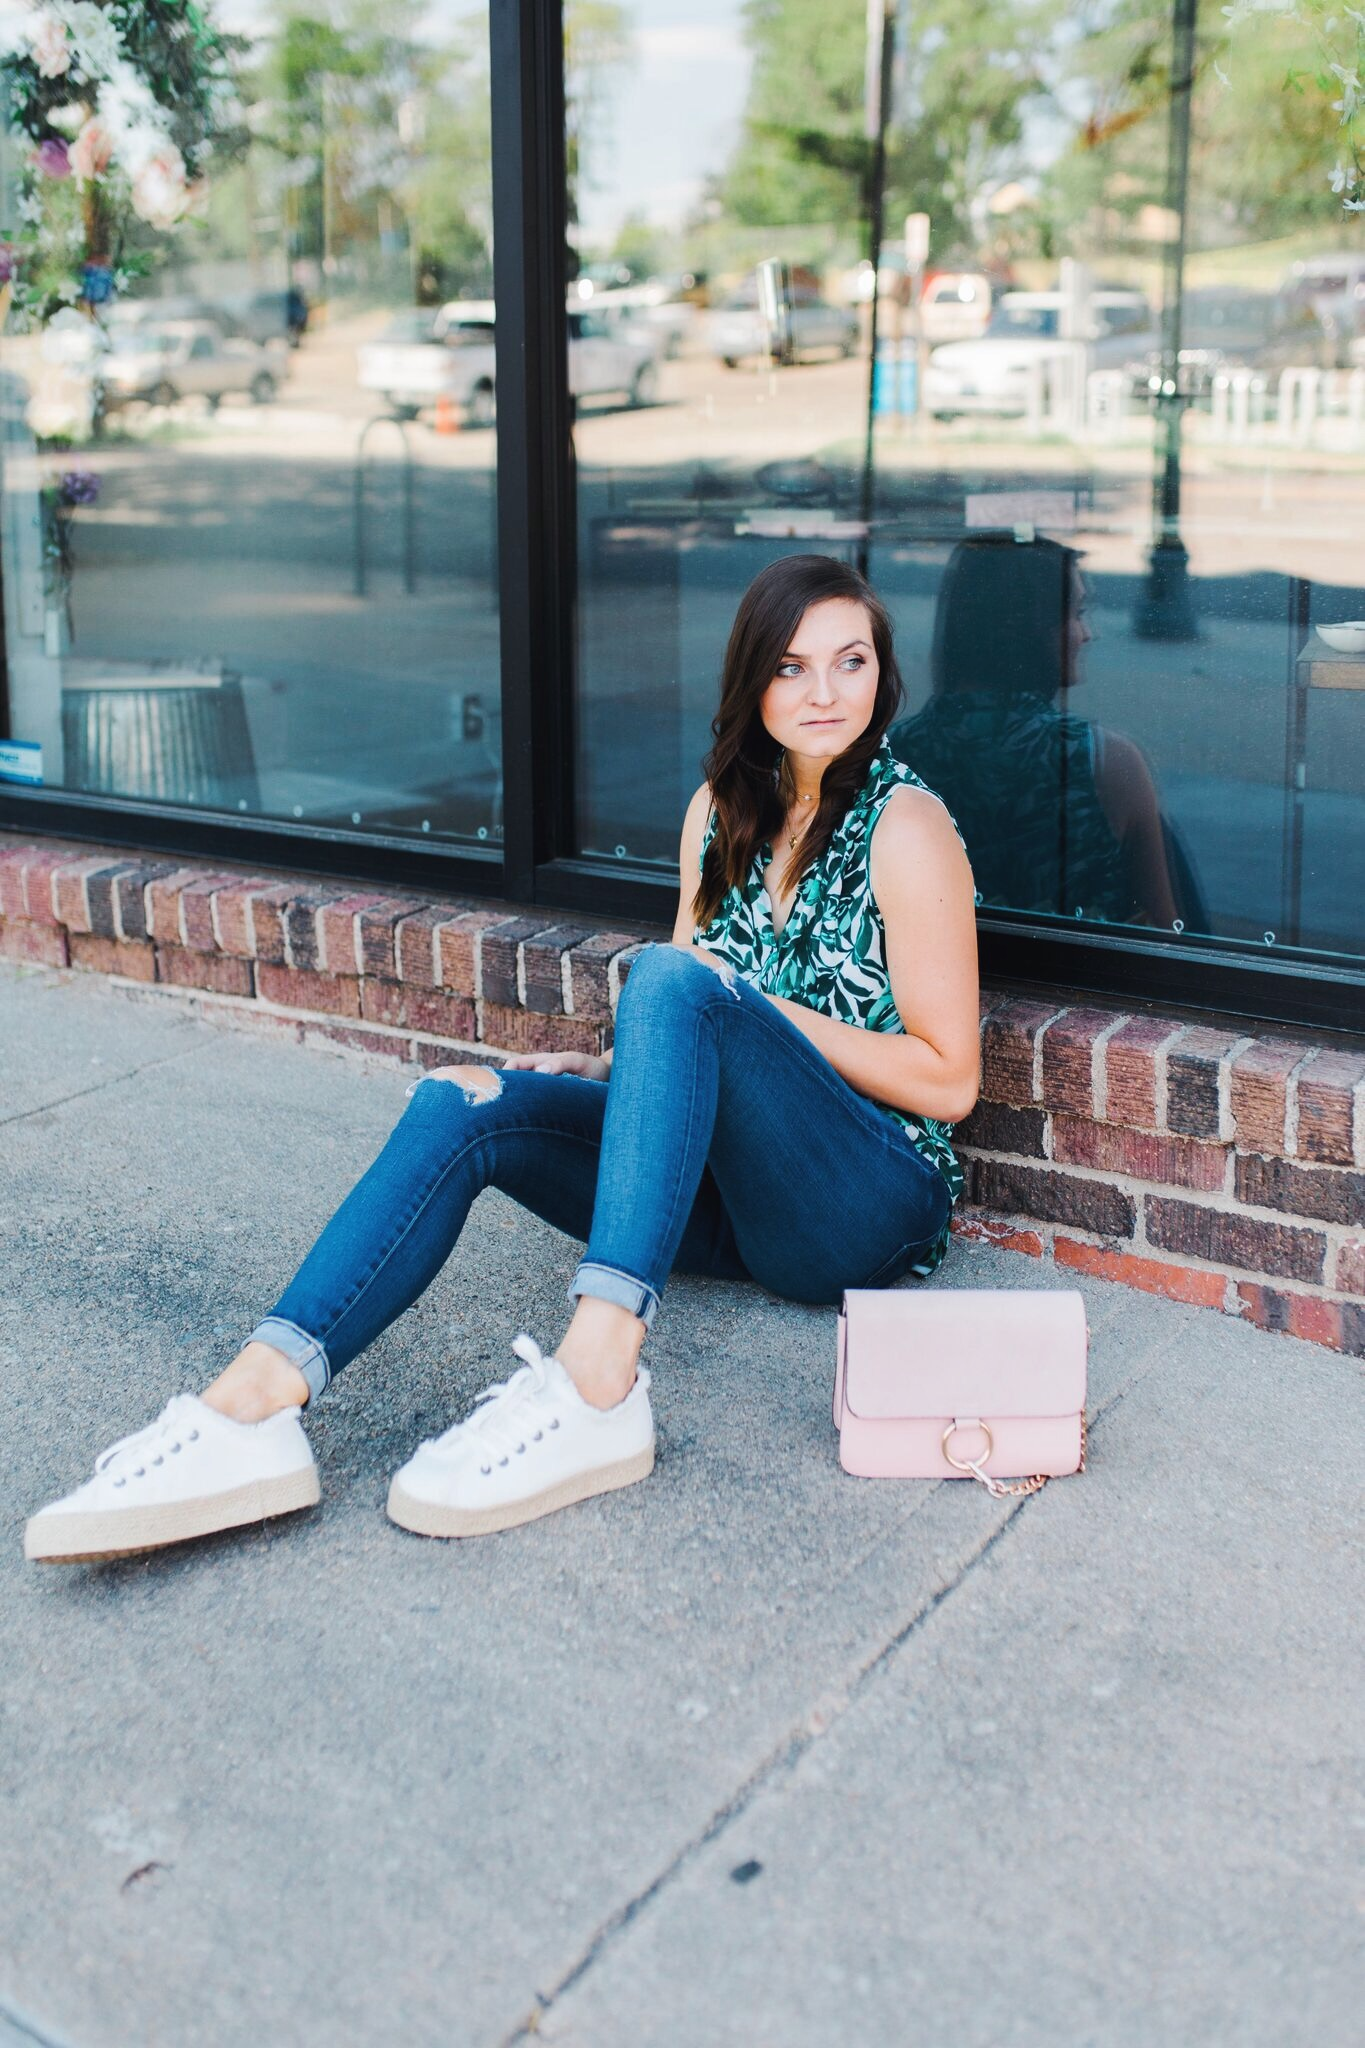 """<img src =""""five-summer-pieces-to-have-in-your-closet.jpg"""" alt =""""fashion-blogger-styling-summer-pieces-to-have-in-your-closet-bold-patterned-pieces-and-espadrille-platform-sneakers"""">"""